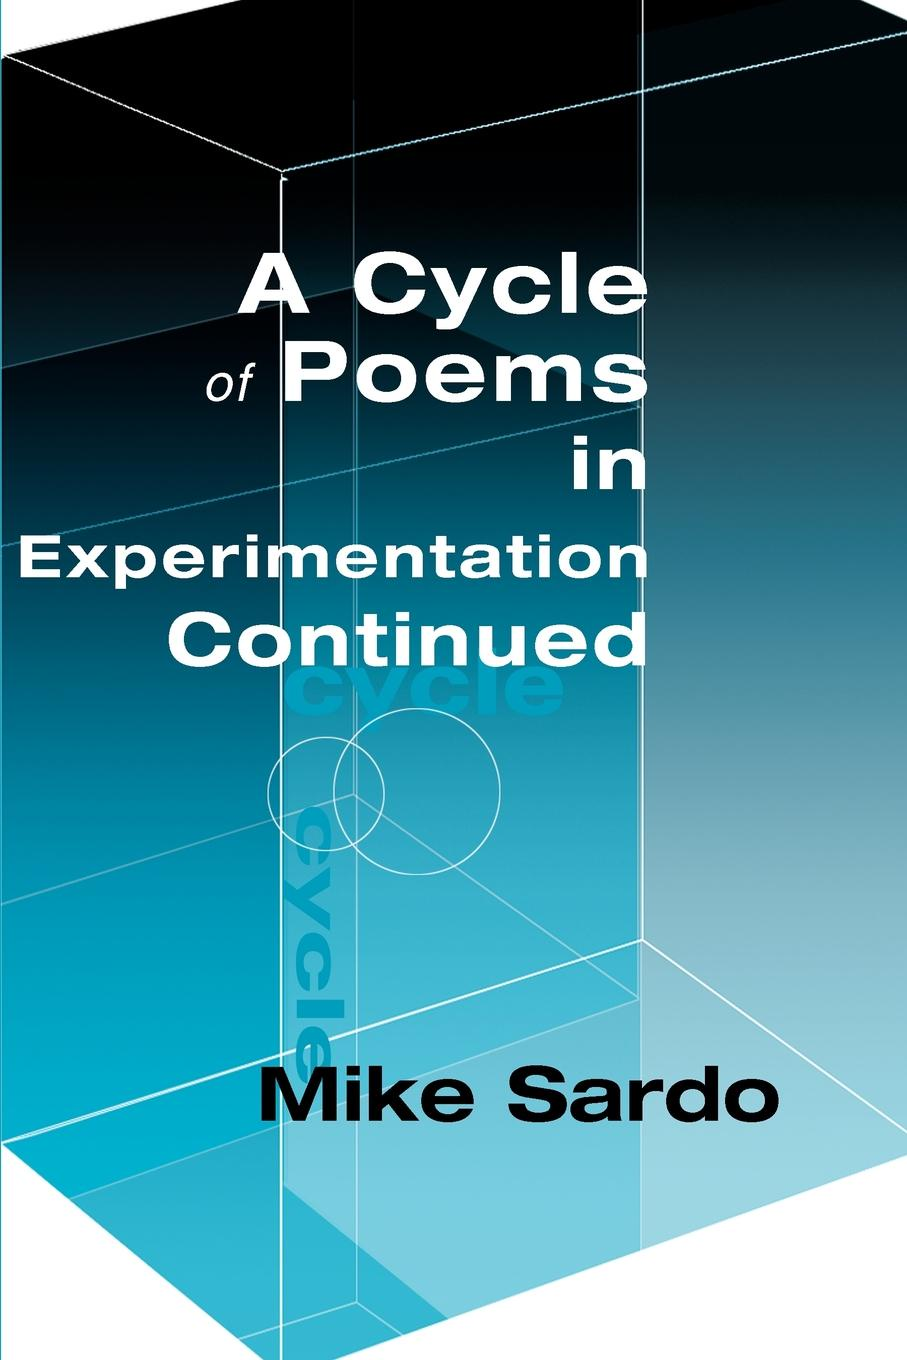 A Cycle of Poems in Experimention Continued. Michael A. J. Sardo